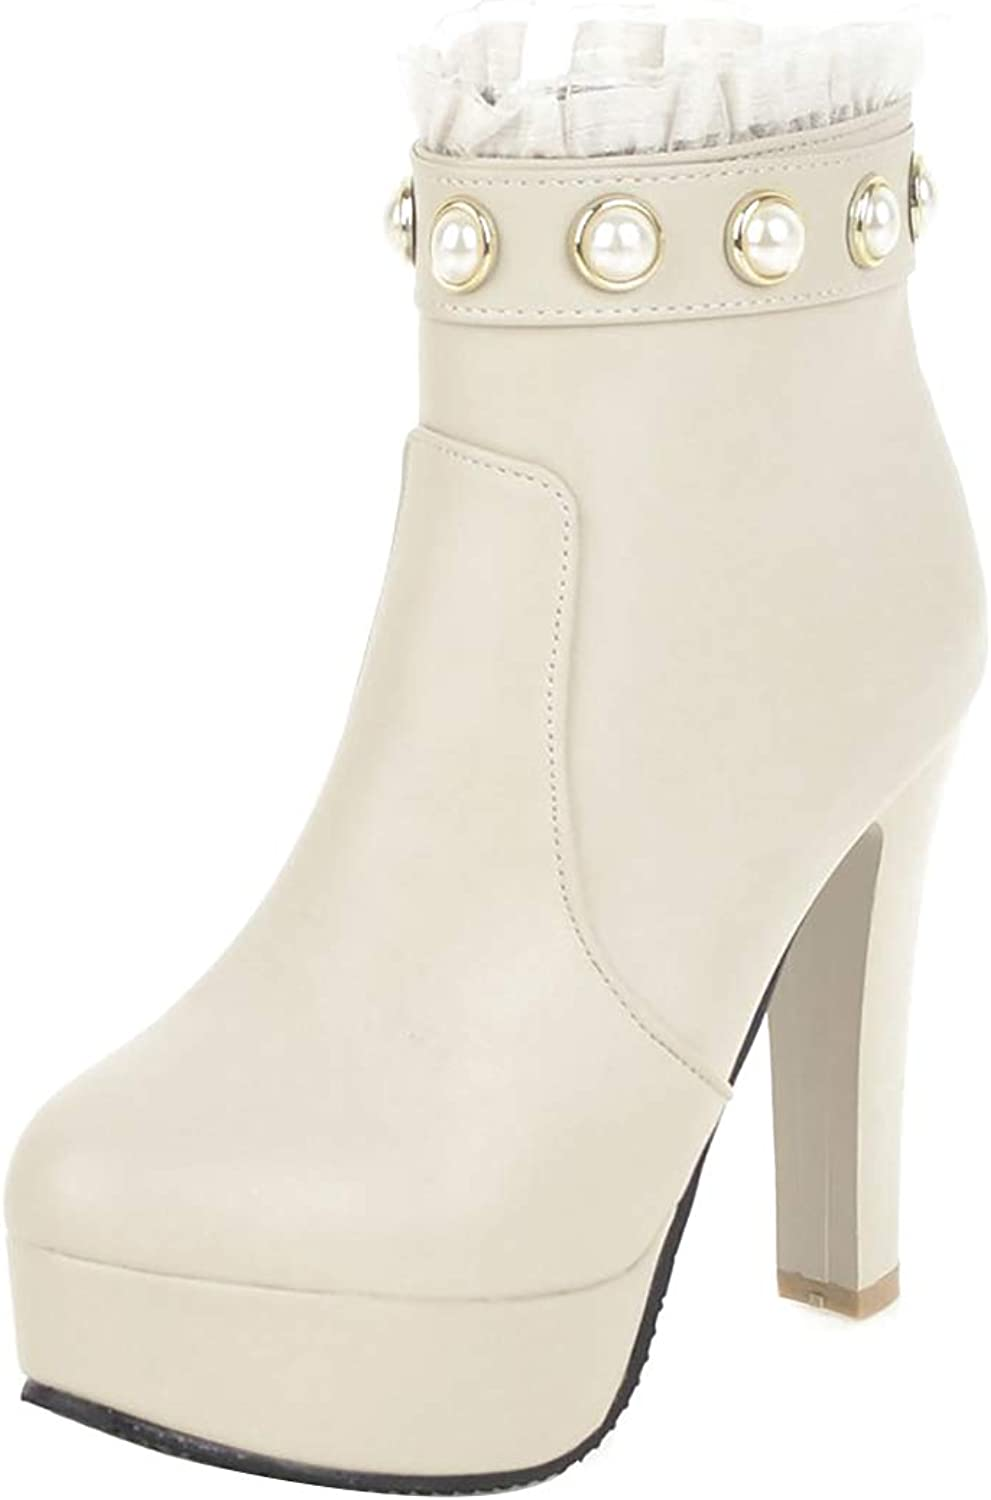 Jushee Womens Juknock 11.5 cm high-Heel Ankle Zipper Synthetic Boots